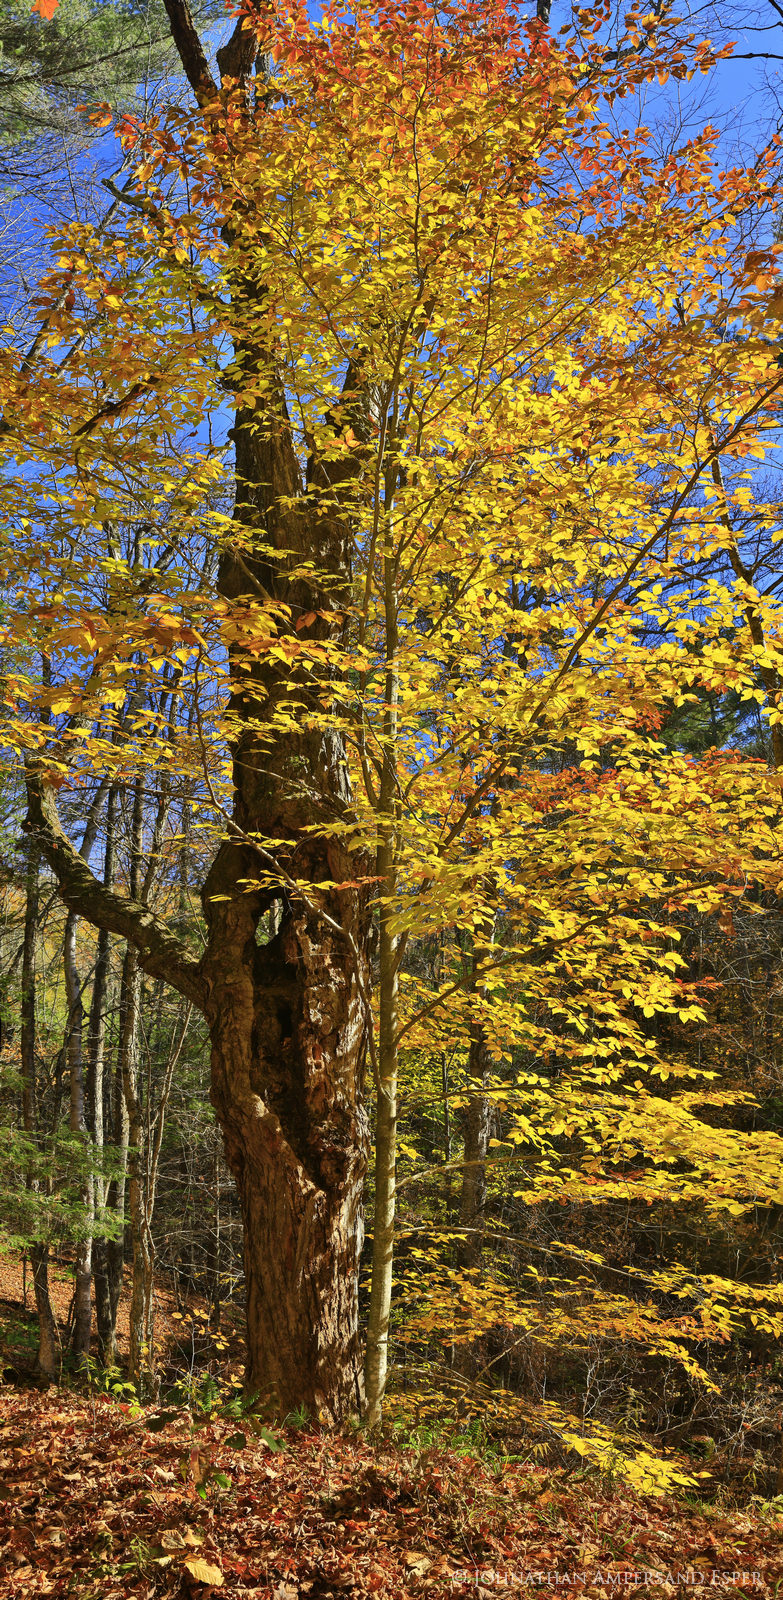 Schroon River,Schroon River property,beech,beech leaves,autumn,2015,Adirondack photography,Adirondack,beech tree,Adirondack Park,fall,foliage,yellow leaves,yellow,vertical panorama,maple,old maple tre, photo